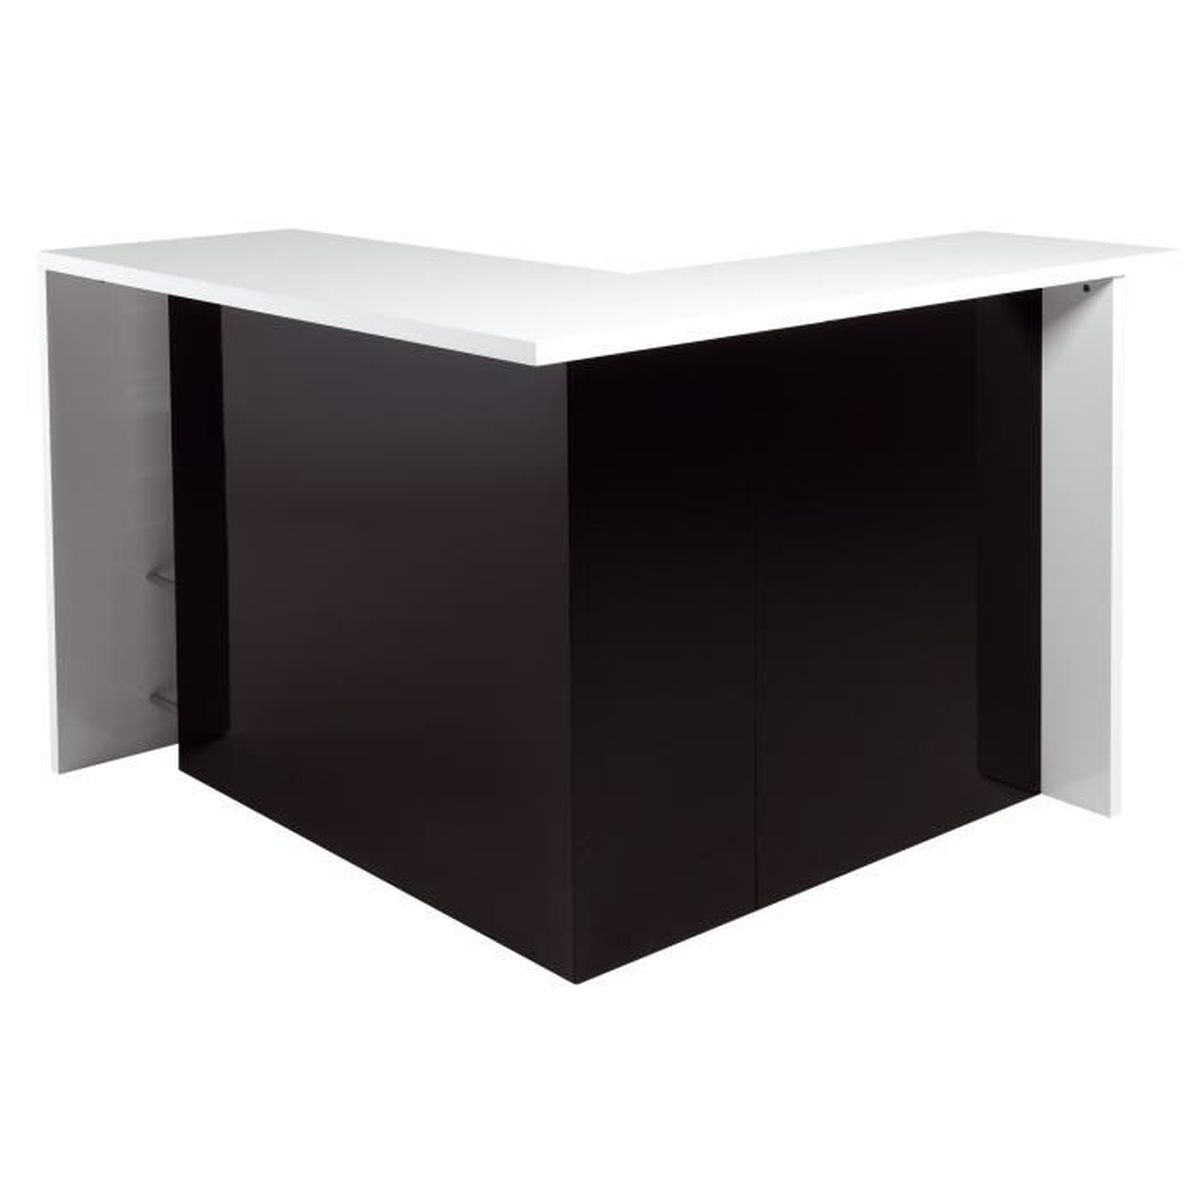 basil bar en angle moderne noir et blanc achat vente. Black Bedroom Furniture Sets. Home Design Ideas